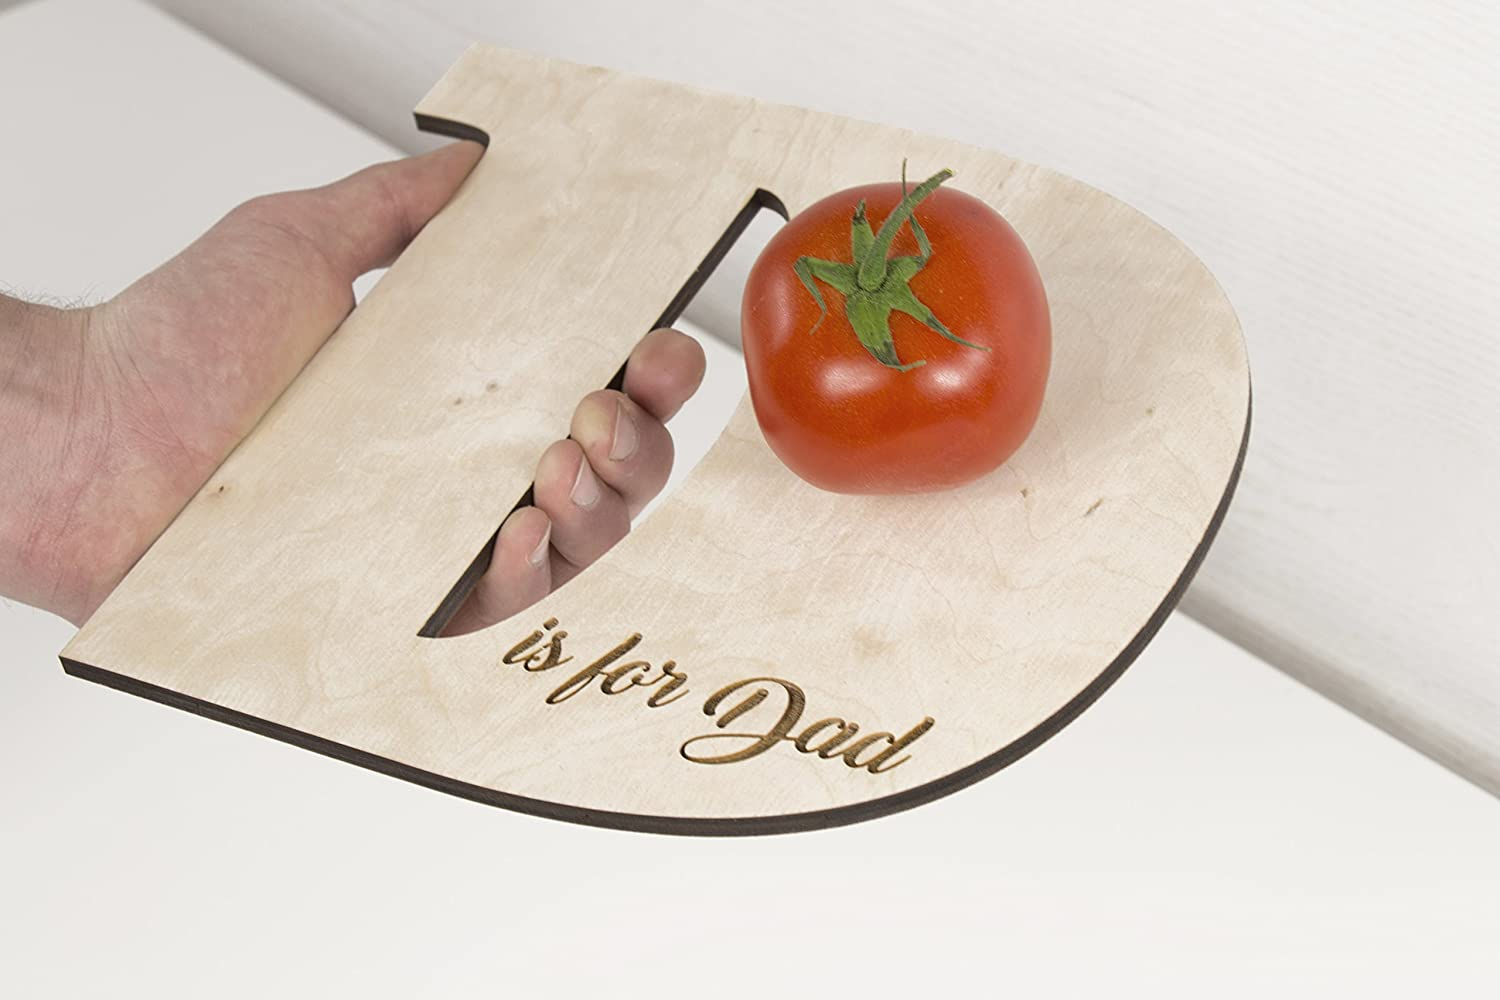 Dad Cutting Board - Wooden Cutting Board - Light Cutting Board - Chopping Board - Dad Gift - Fathers Day Gift - Cooking Gift